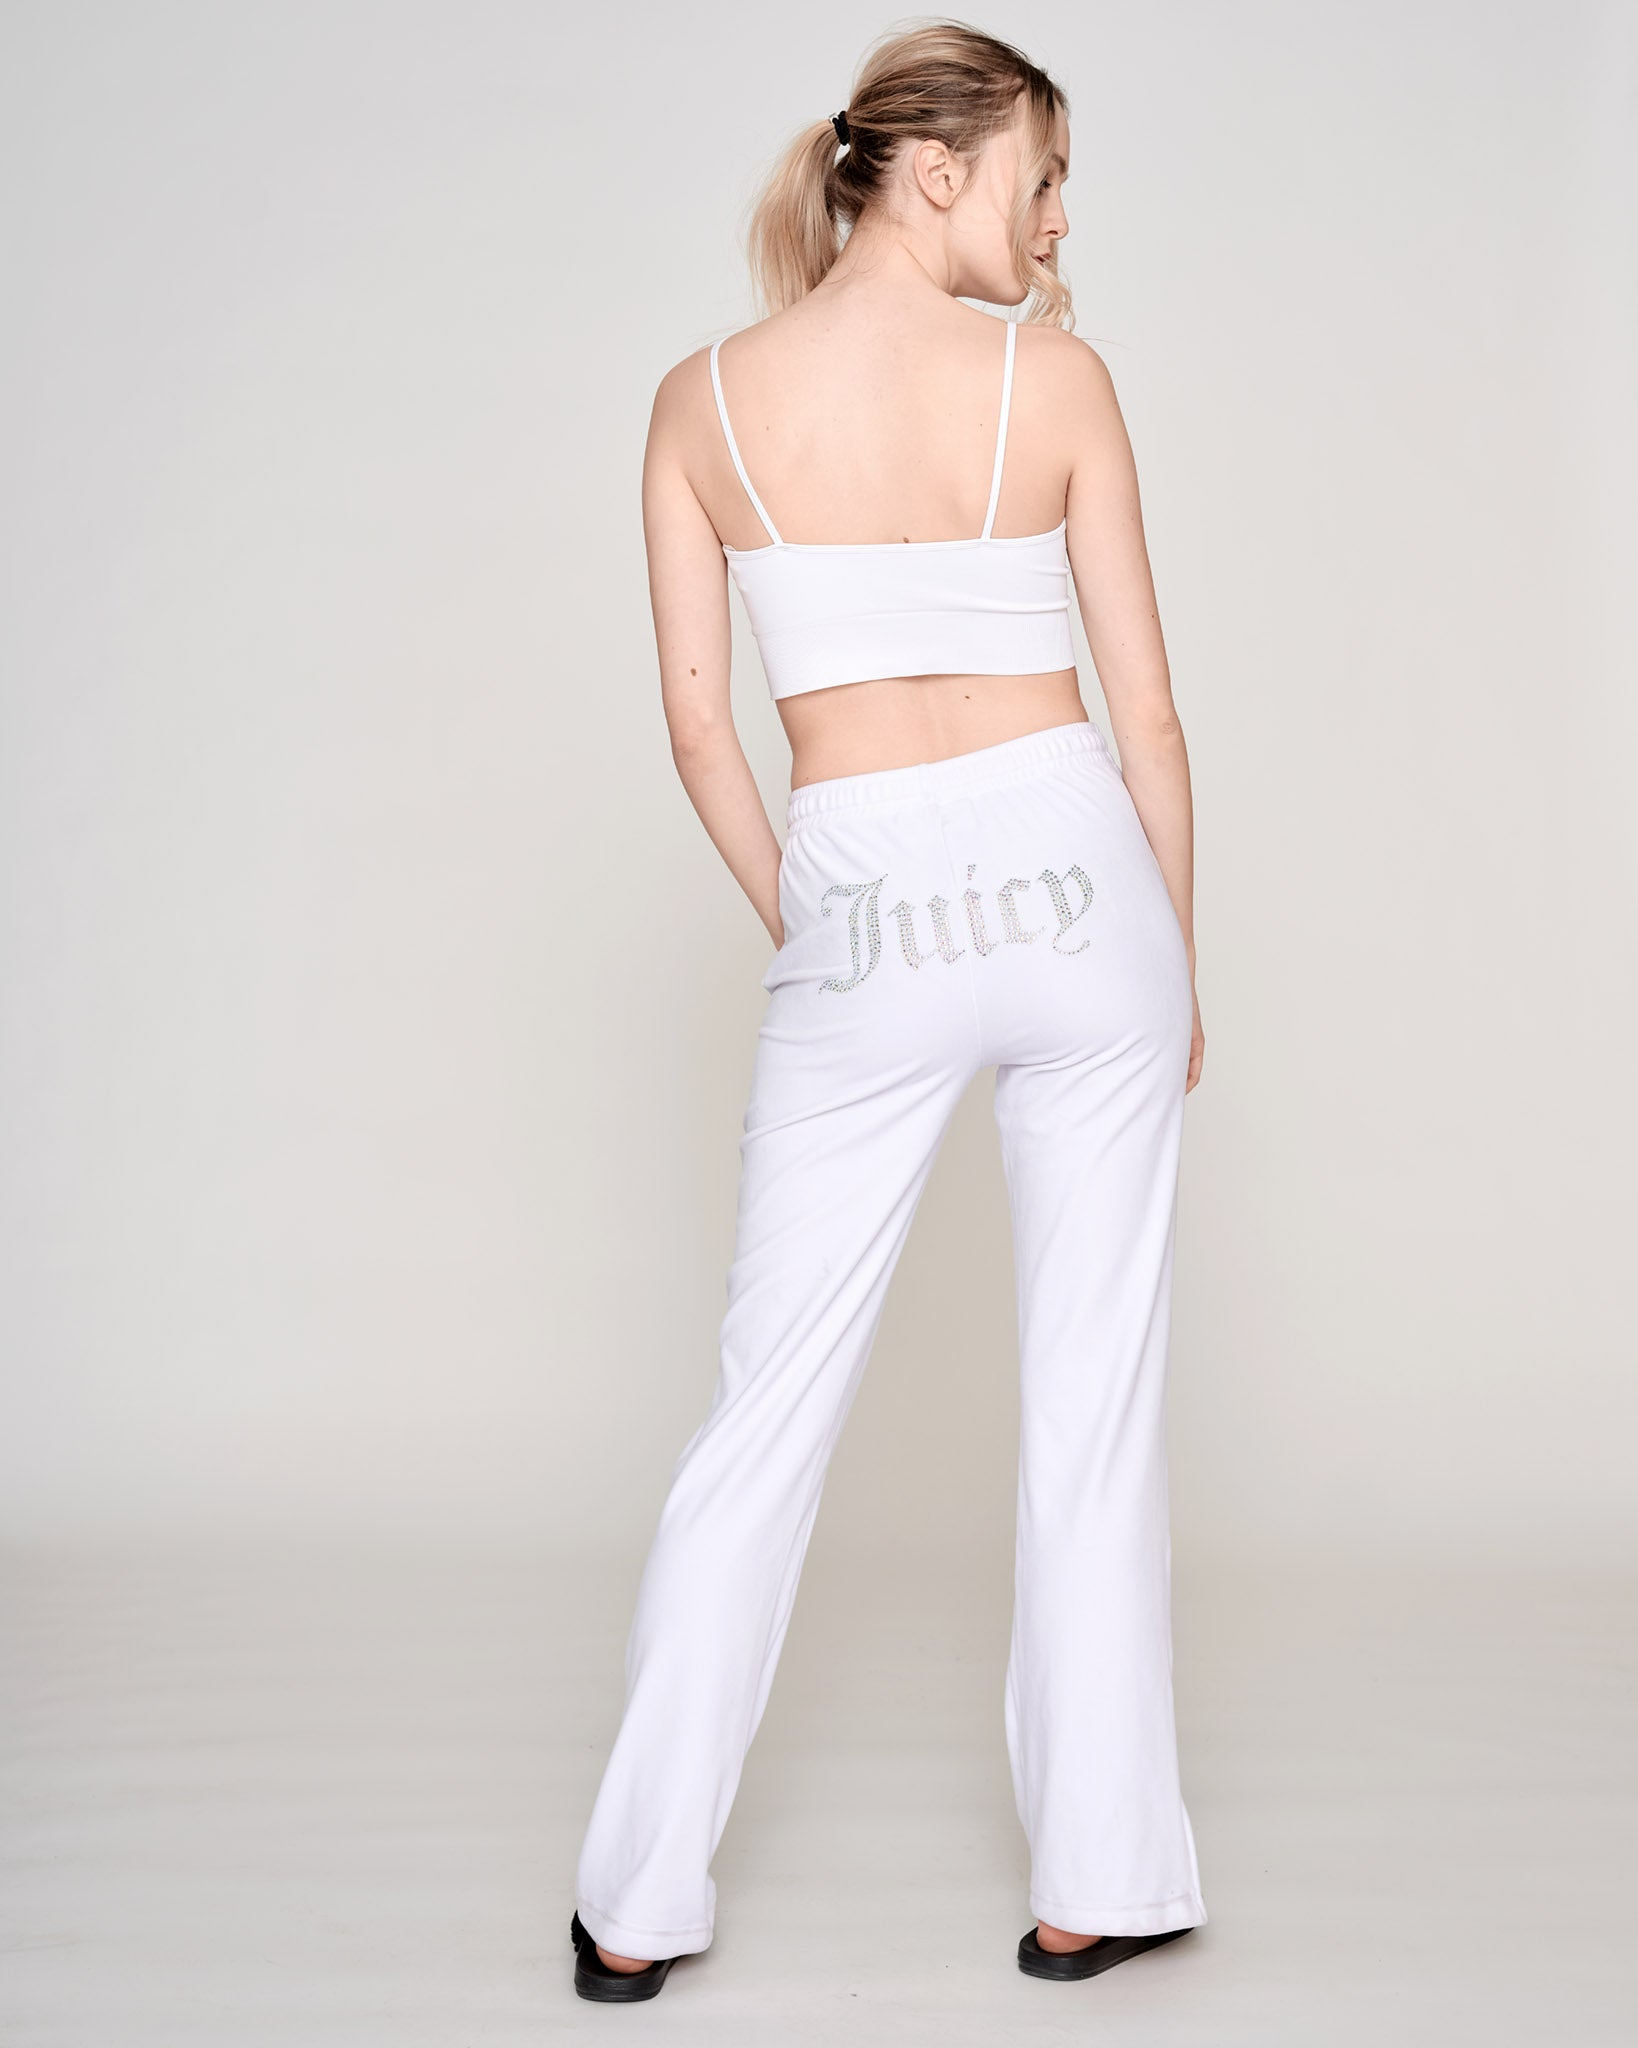 Tina Diamante Velour Pant White - Juicy Couture Scandinavia